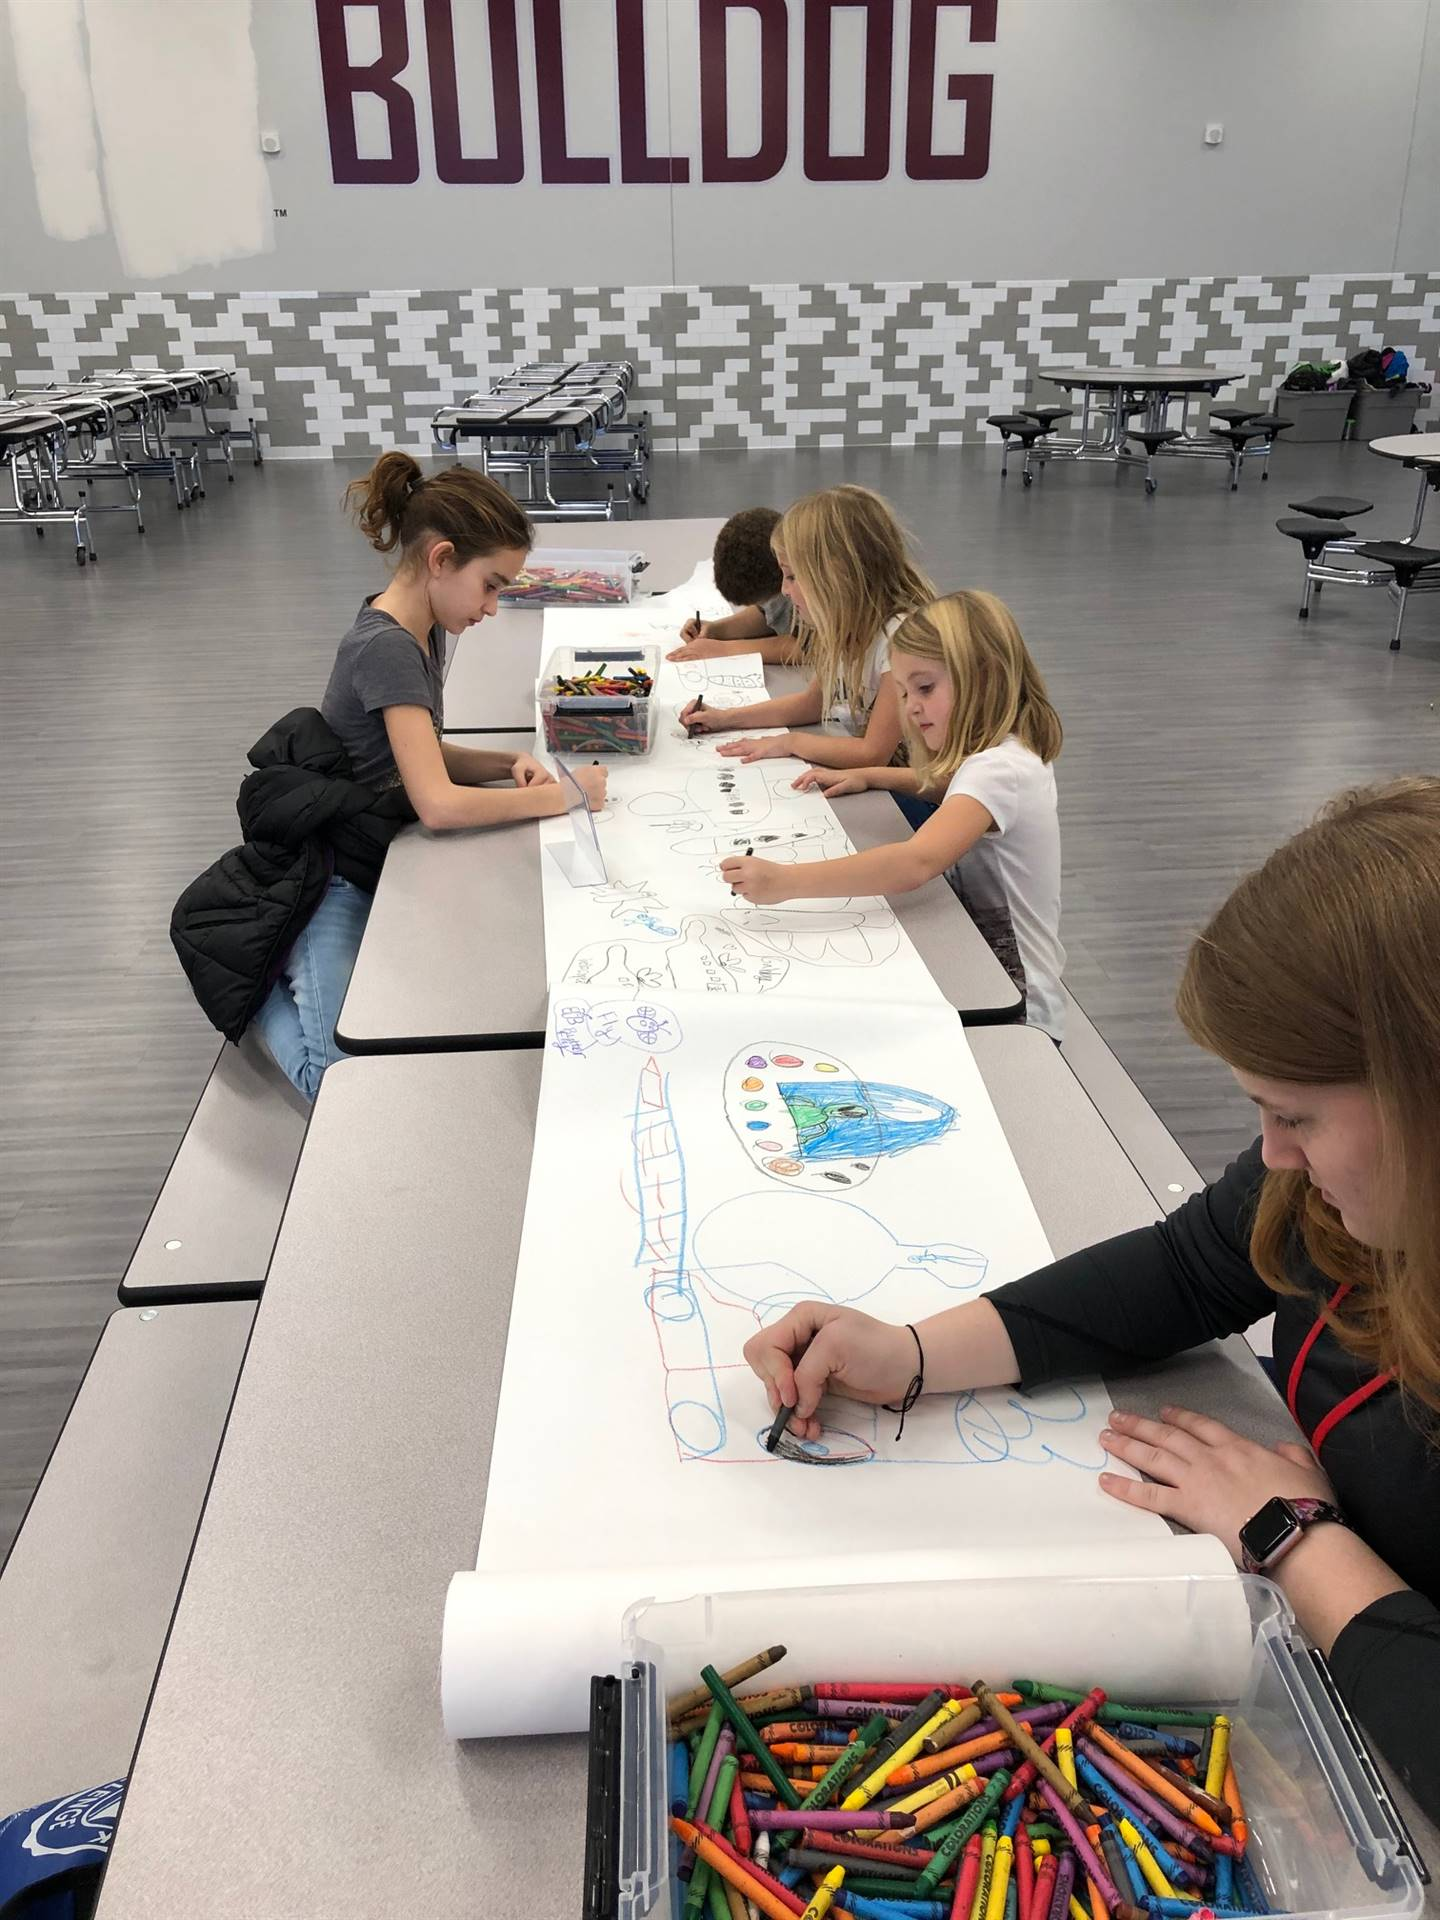 Students drawing in the cafeteria